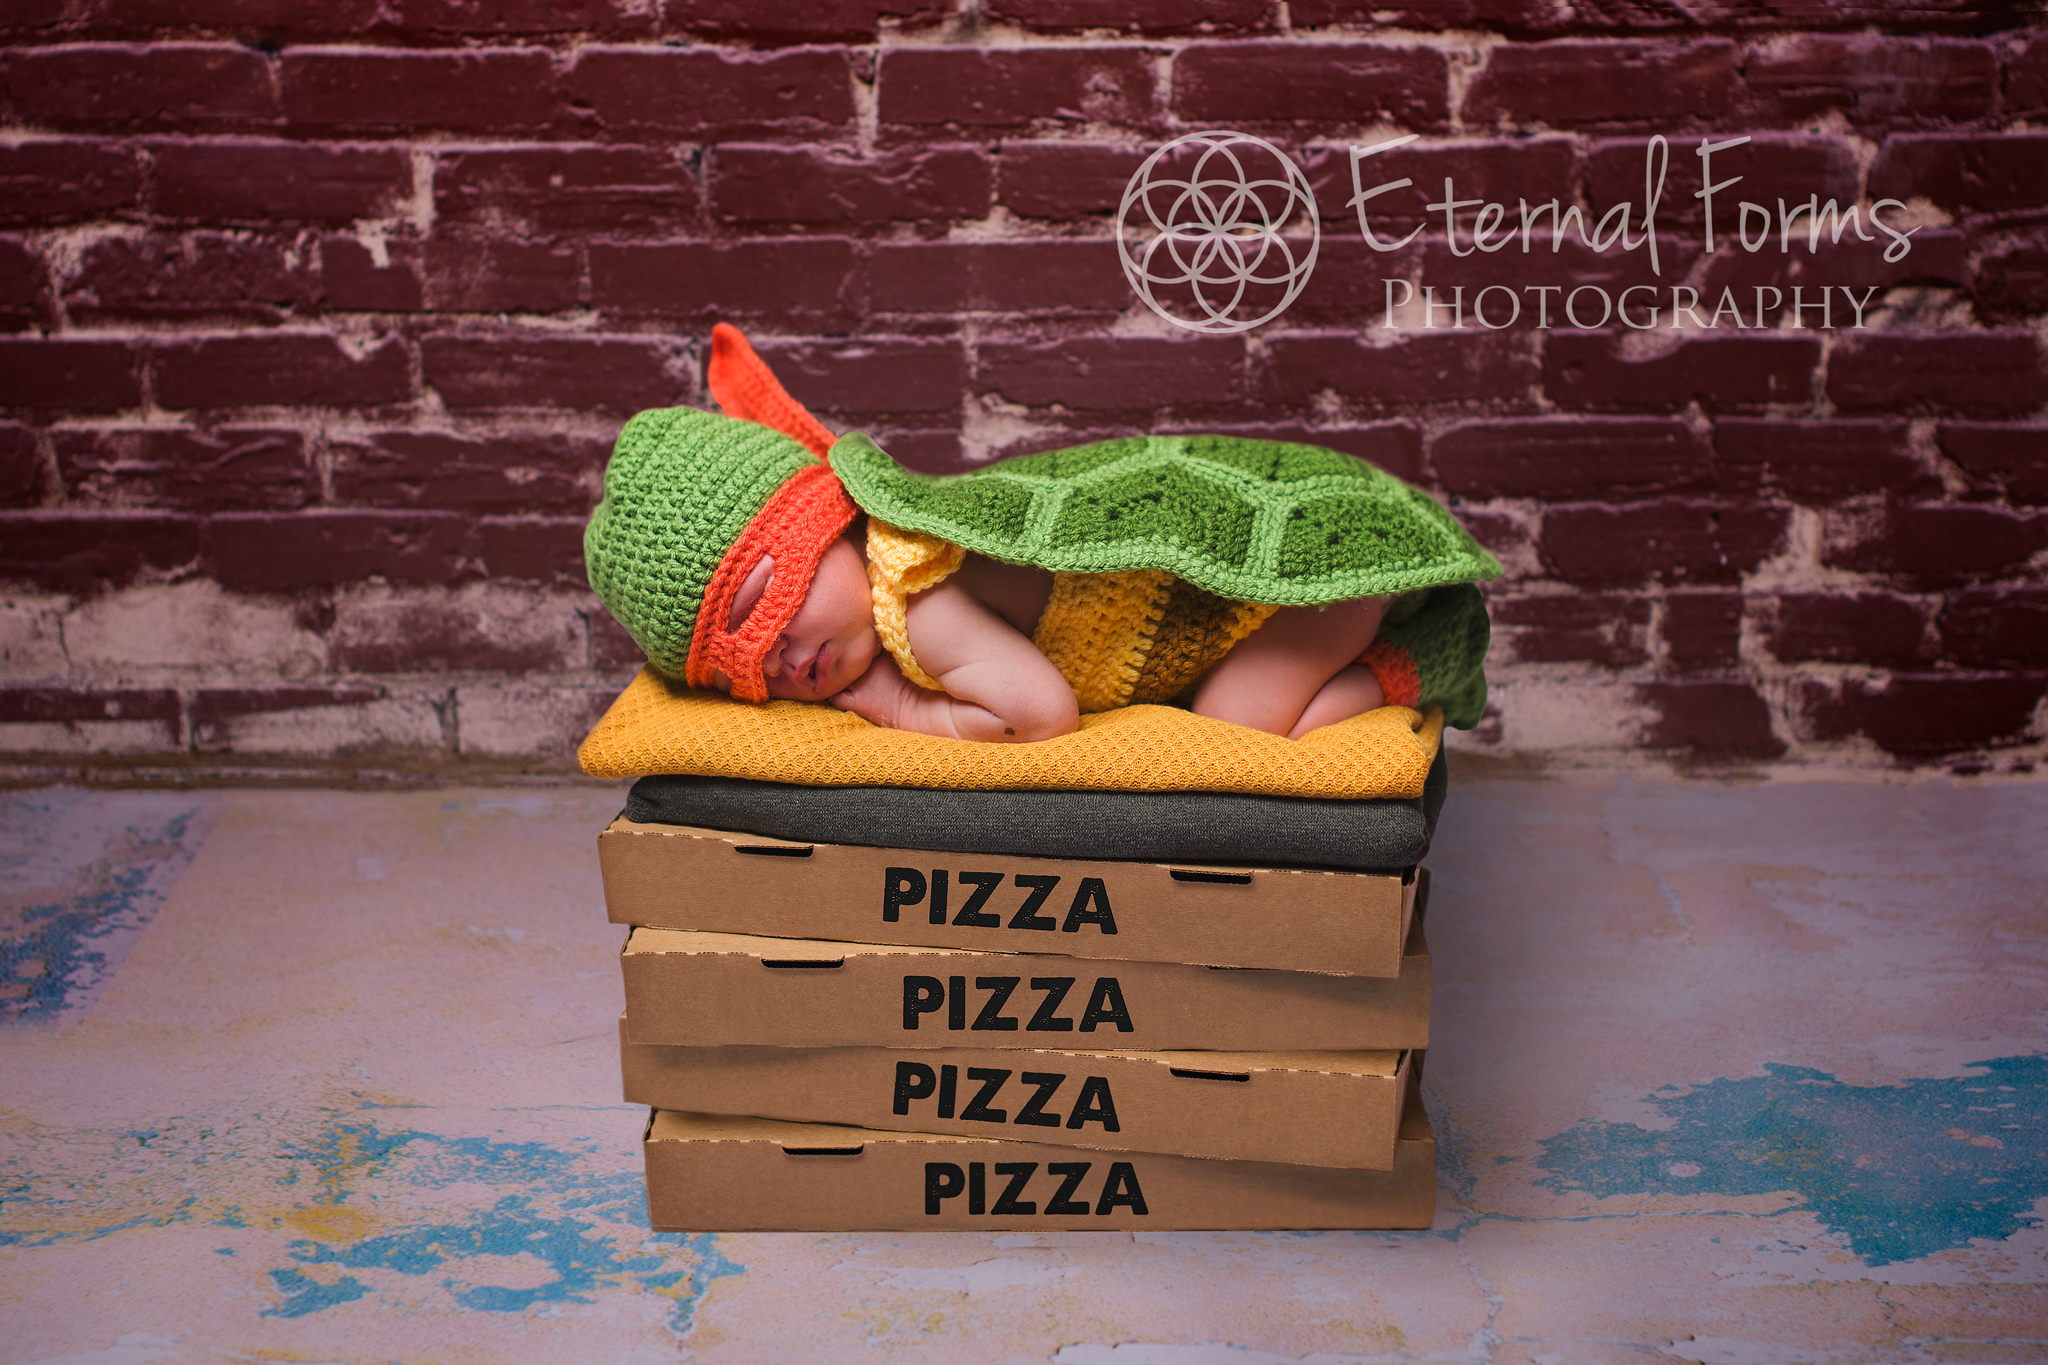 And what an adorable new TMNT he makes!  No doubt he's dreaming of a warm stack of fresh pizzas!